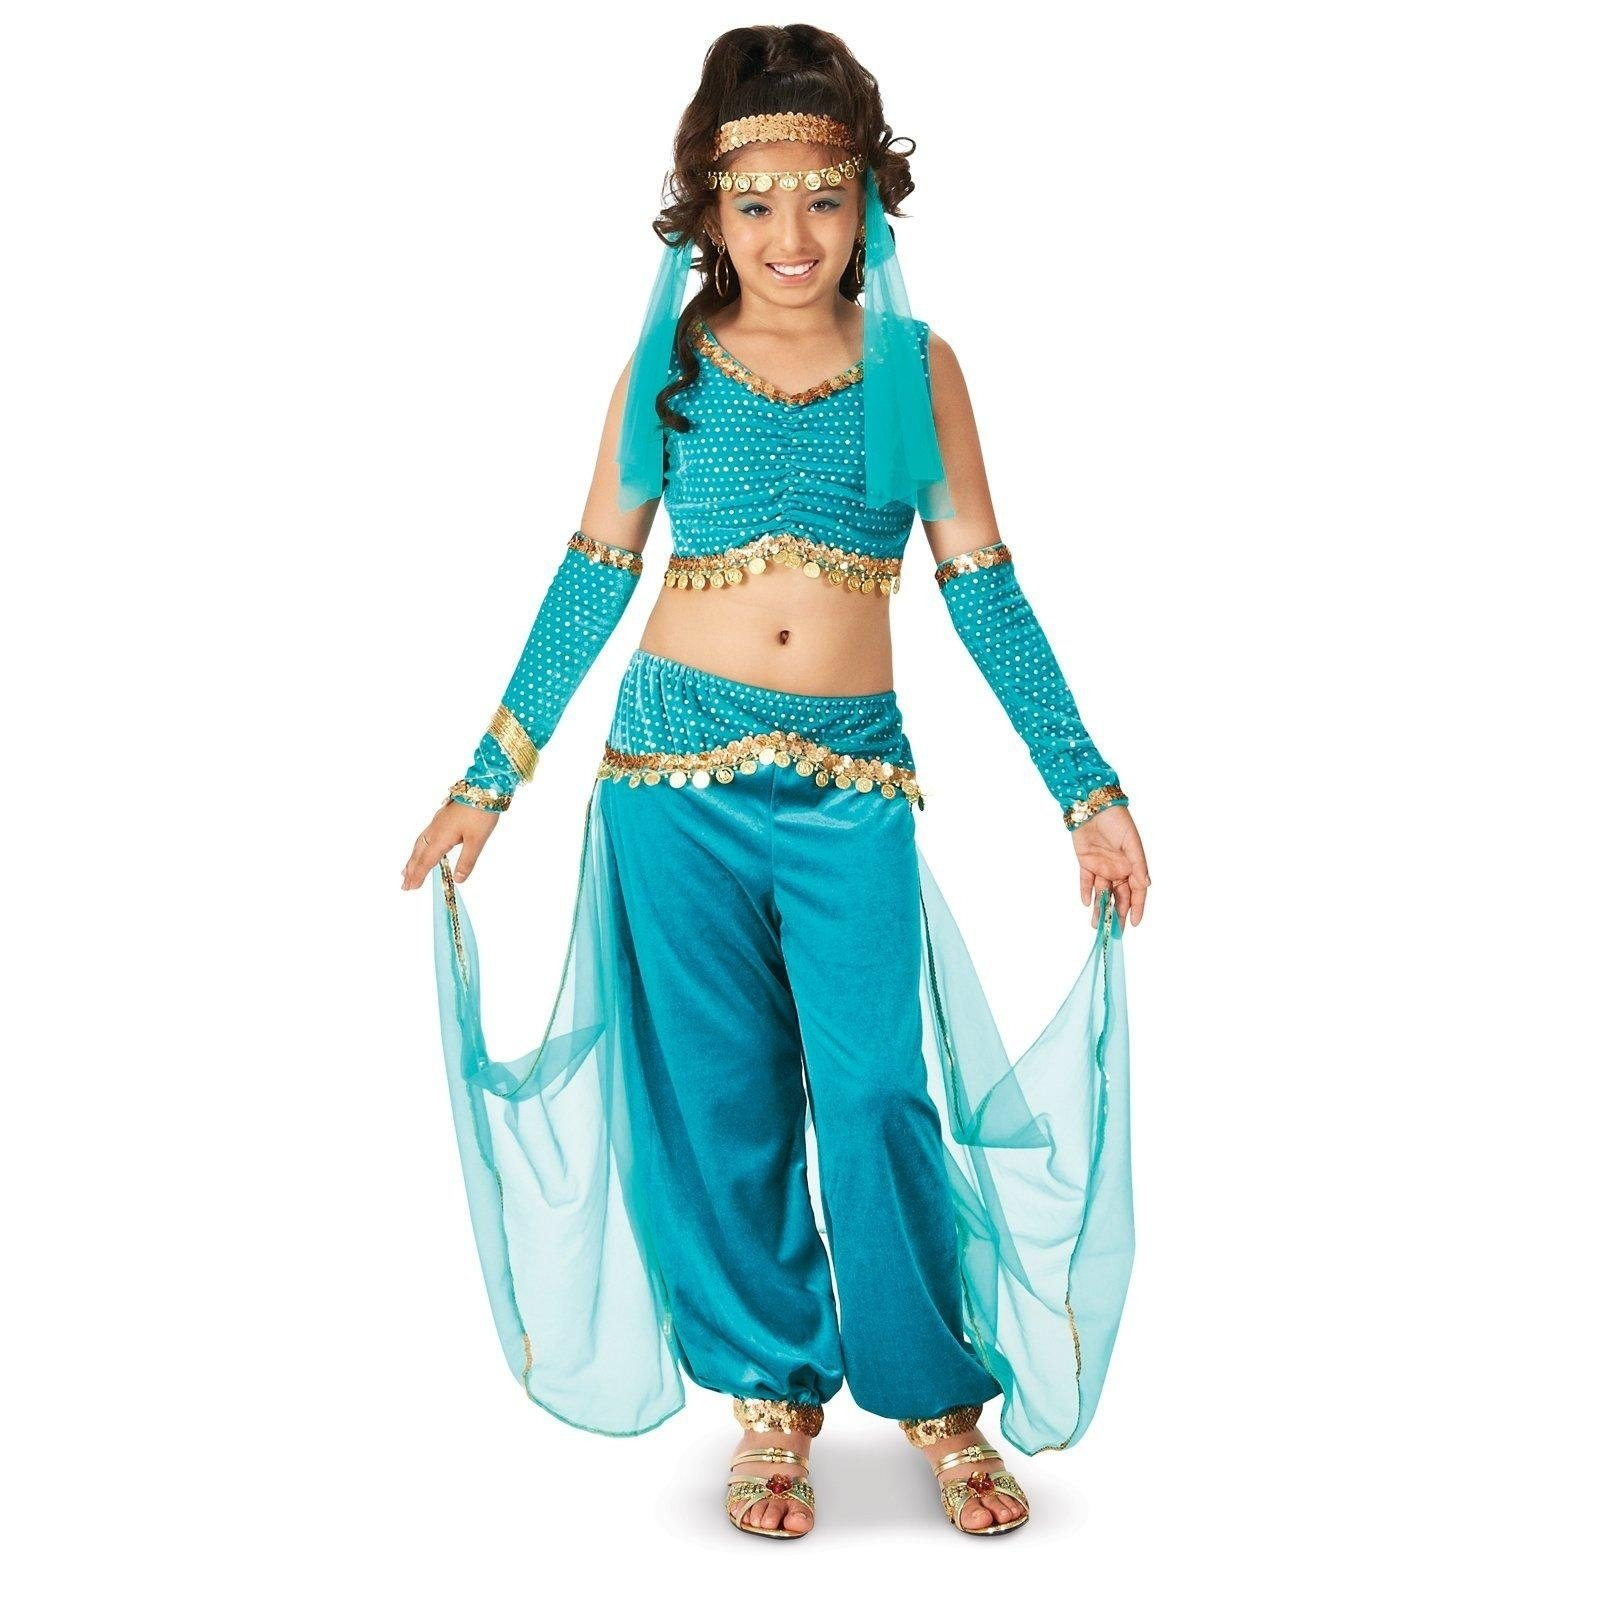 10 Pretty Halloween Costume Ideas For 13 Year Olds genie child costume children costumes costumes and halloween costumes